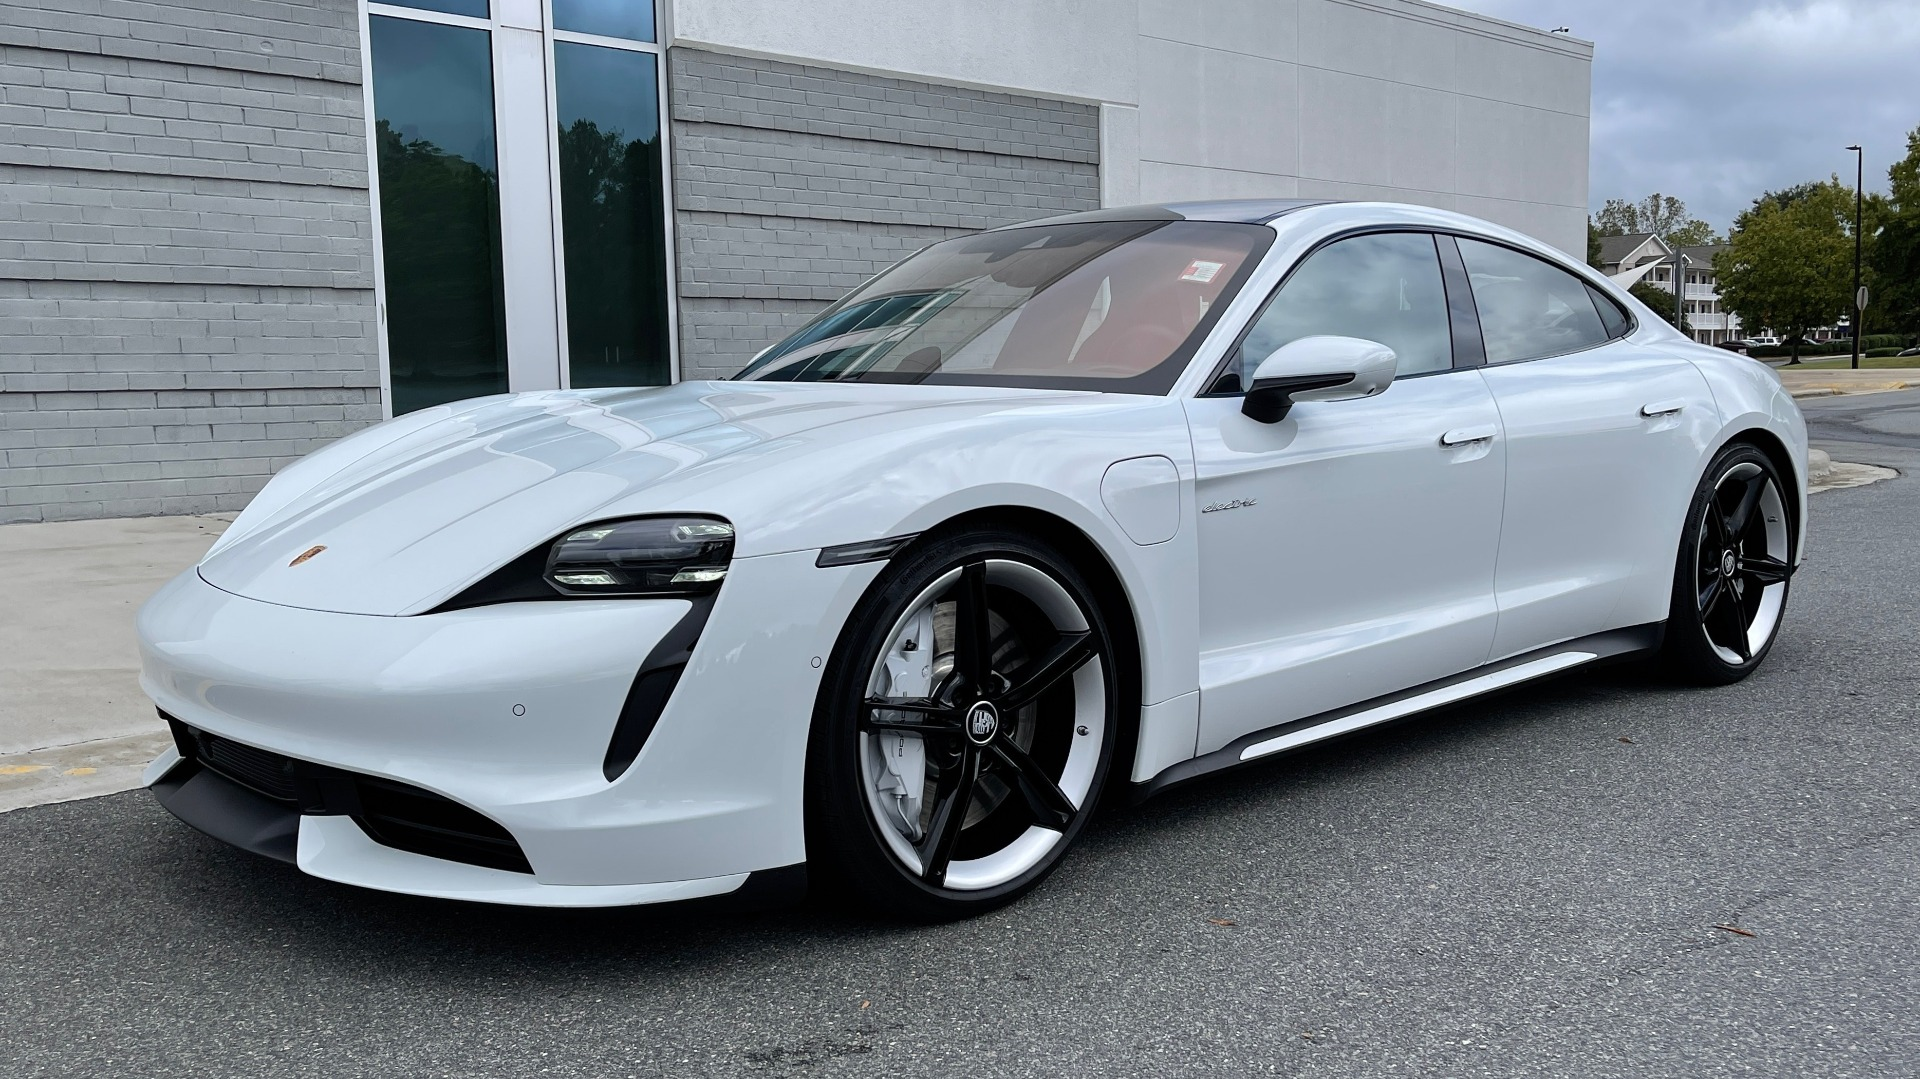 Used 2020 Porsche TAYCAN TURBO SEDAN / AWD / NAV / BOSE / PANO-ROOF / LCA / SURROUND VIEW for sale $162,995 at Formula Imports in Charlotte NC 28227 2